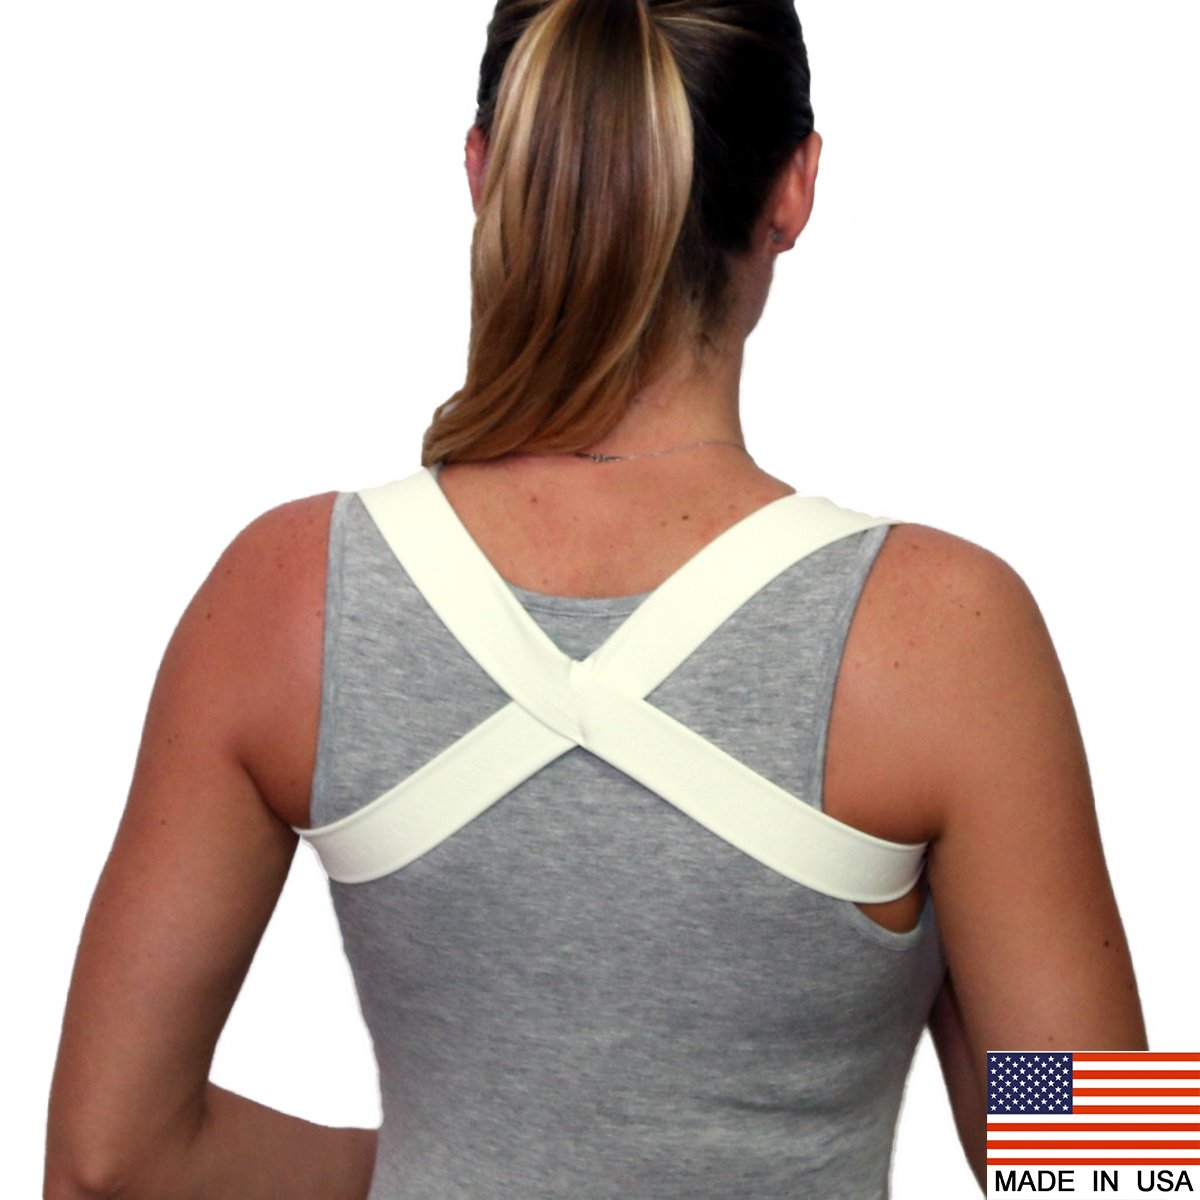 Amazon.com: POSTURE BRACE / SHOULDER SUPPORT - THE 2 IN 1 POSTURIFIC BRACE (BEIGE XLARGE) : Health & Personal Care